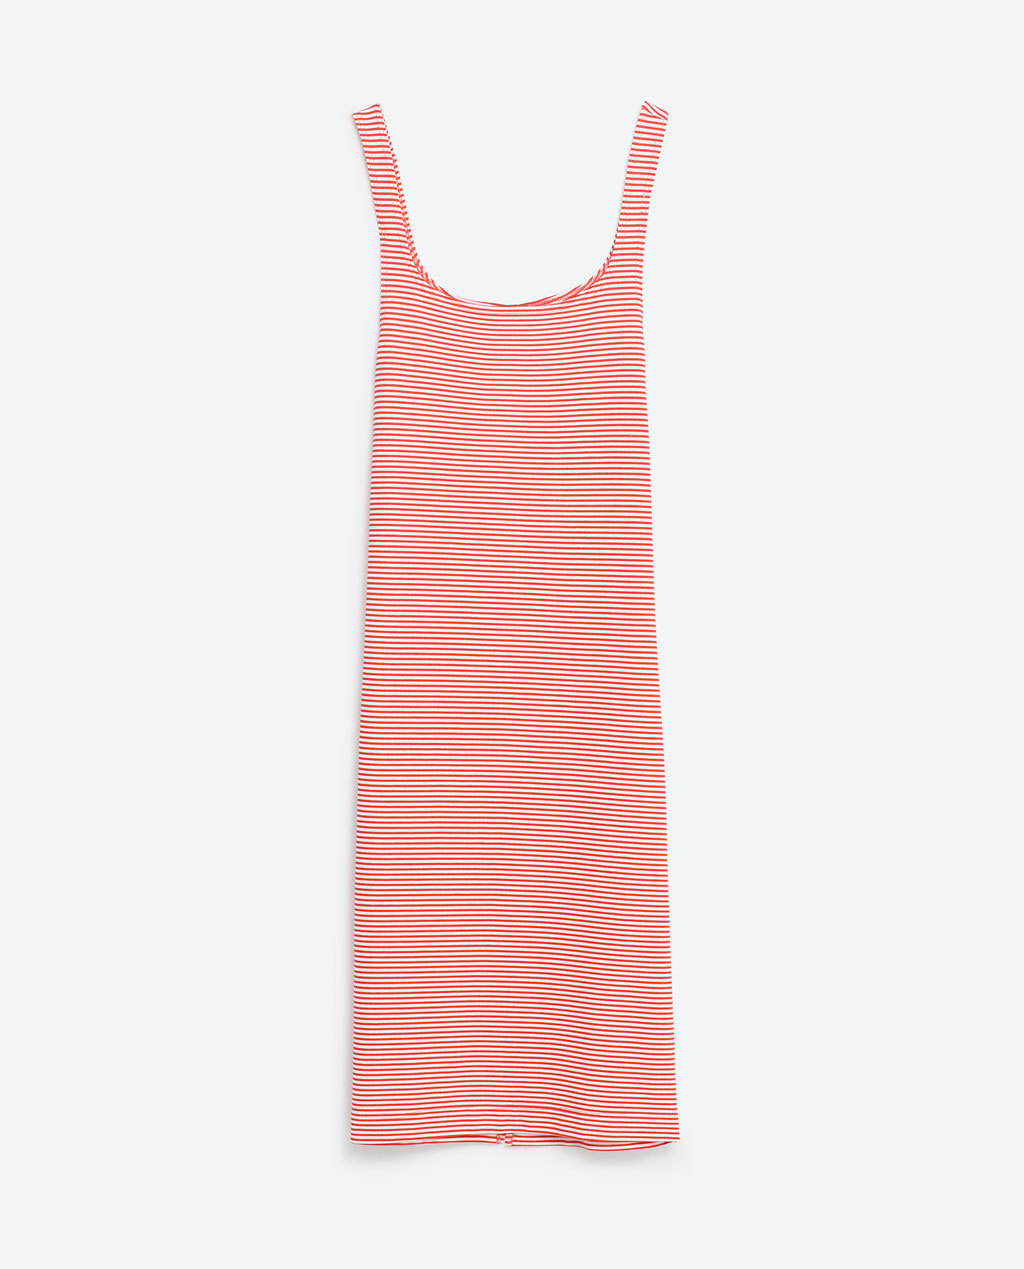 Basic Dress - sleeve style: standard vest straps/shoulder straps; pattern: horizontal stripes; style: vest; back detail: low cut/open back; secondary colour: white; predominant colour: true red; occasions: casual; length: on the knee; fit: body skimming; neckline: scoop; fibres: cotton - stretch; sleeve length: sleeveless; texture group: jersey - clingy; pattern type: fabric; pattern size: standard; season: s/s 2016; wardrobe: highlight